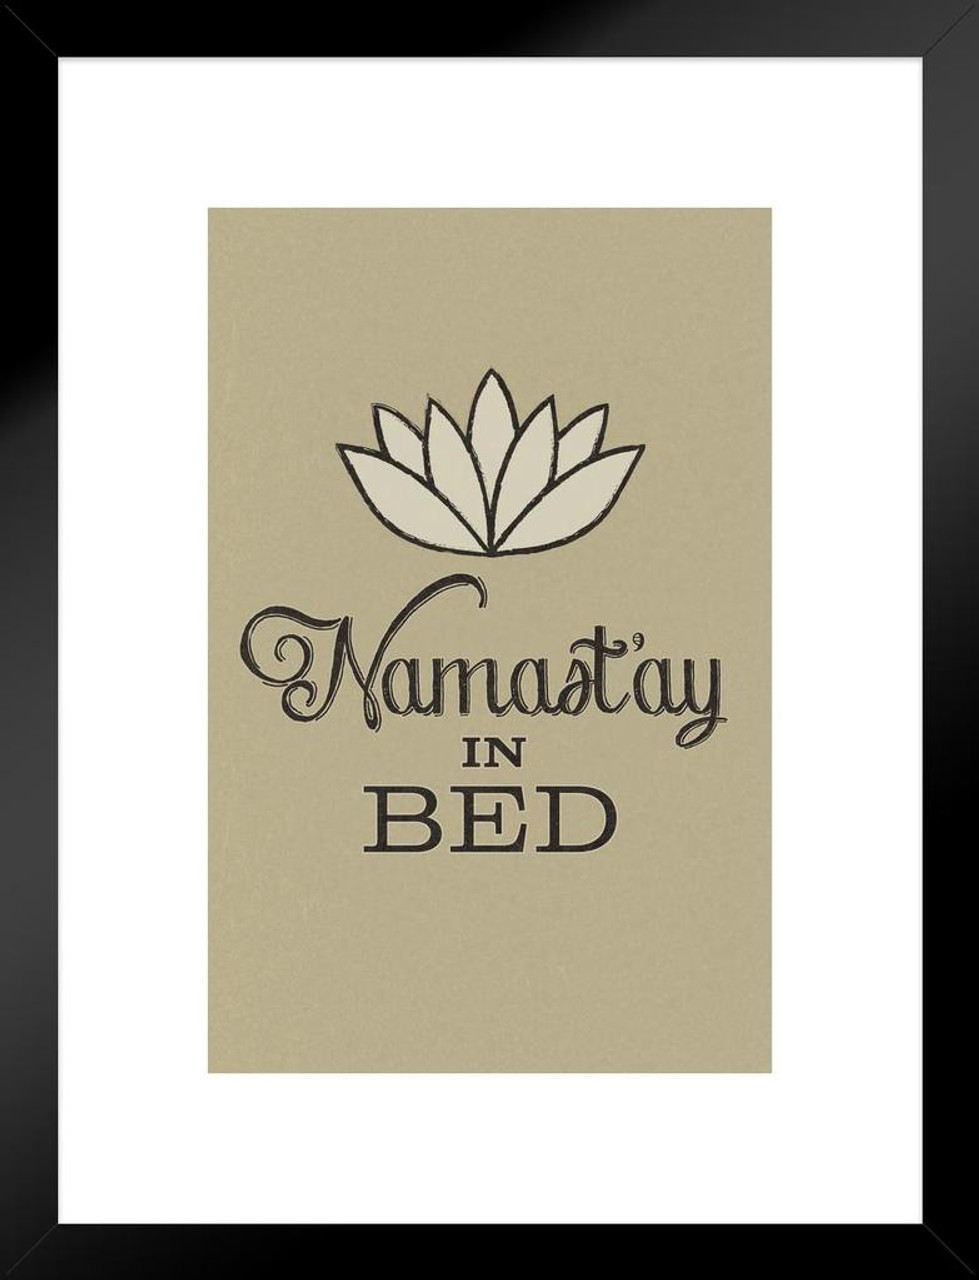 Namastay In Bed Tan Matted Framed Wall Art Print 20x26 Inch